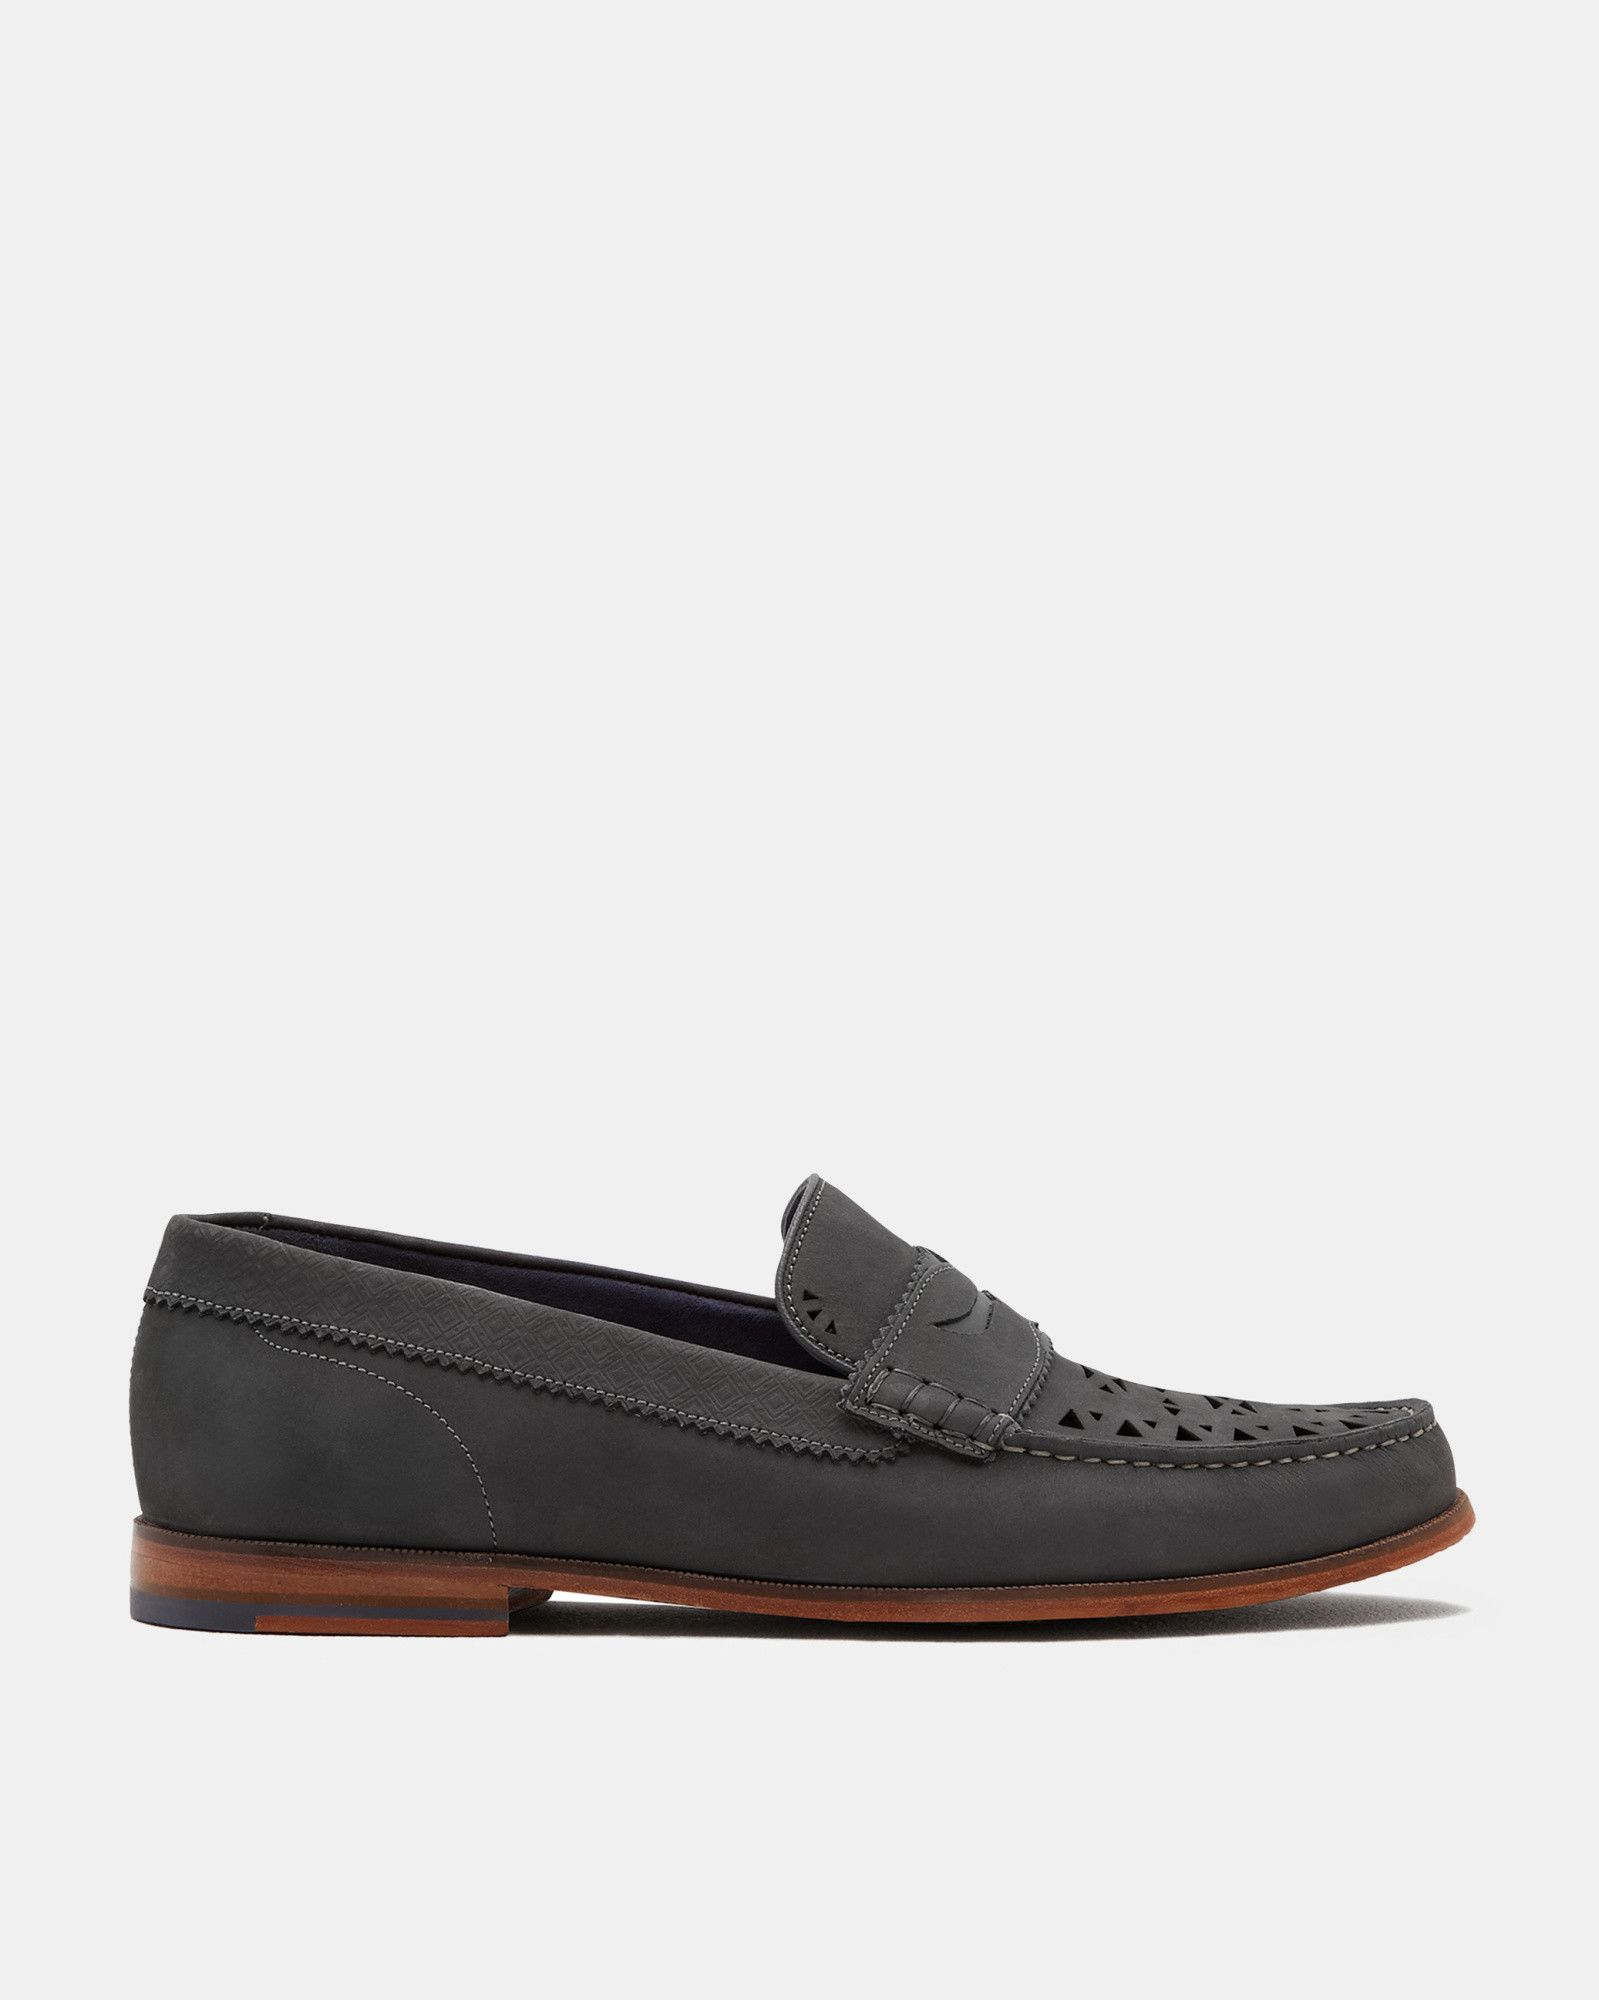 74da130a71d Ted Baker Nubuck suede cut-out loafers Grey